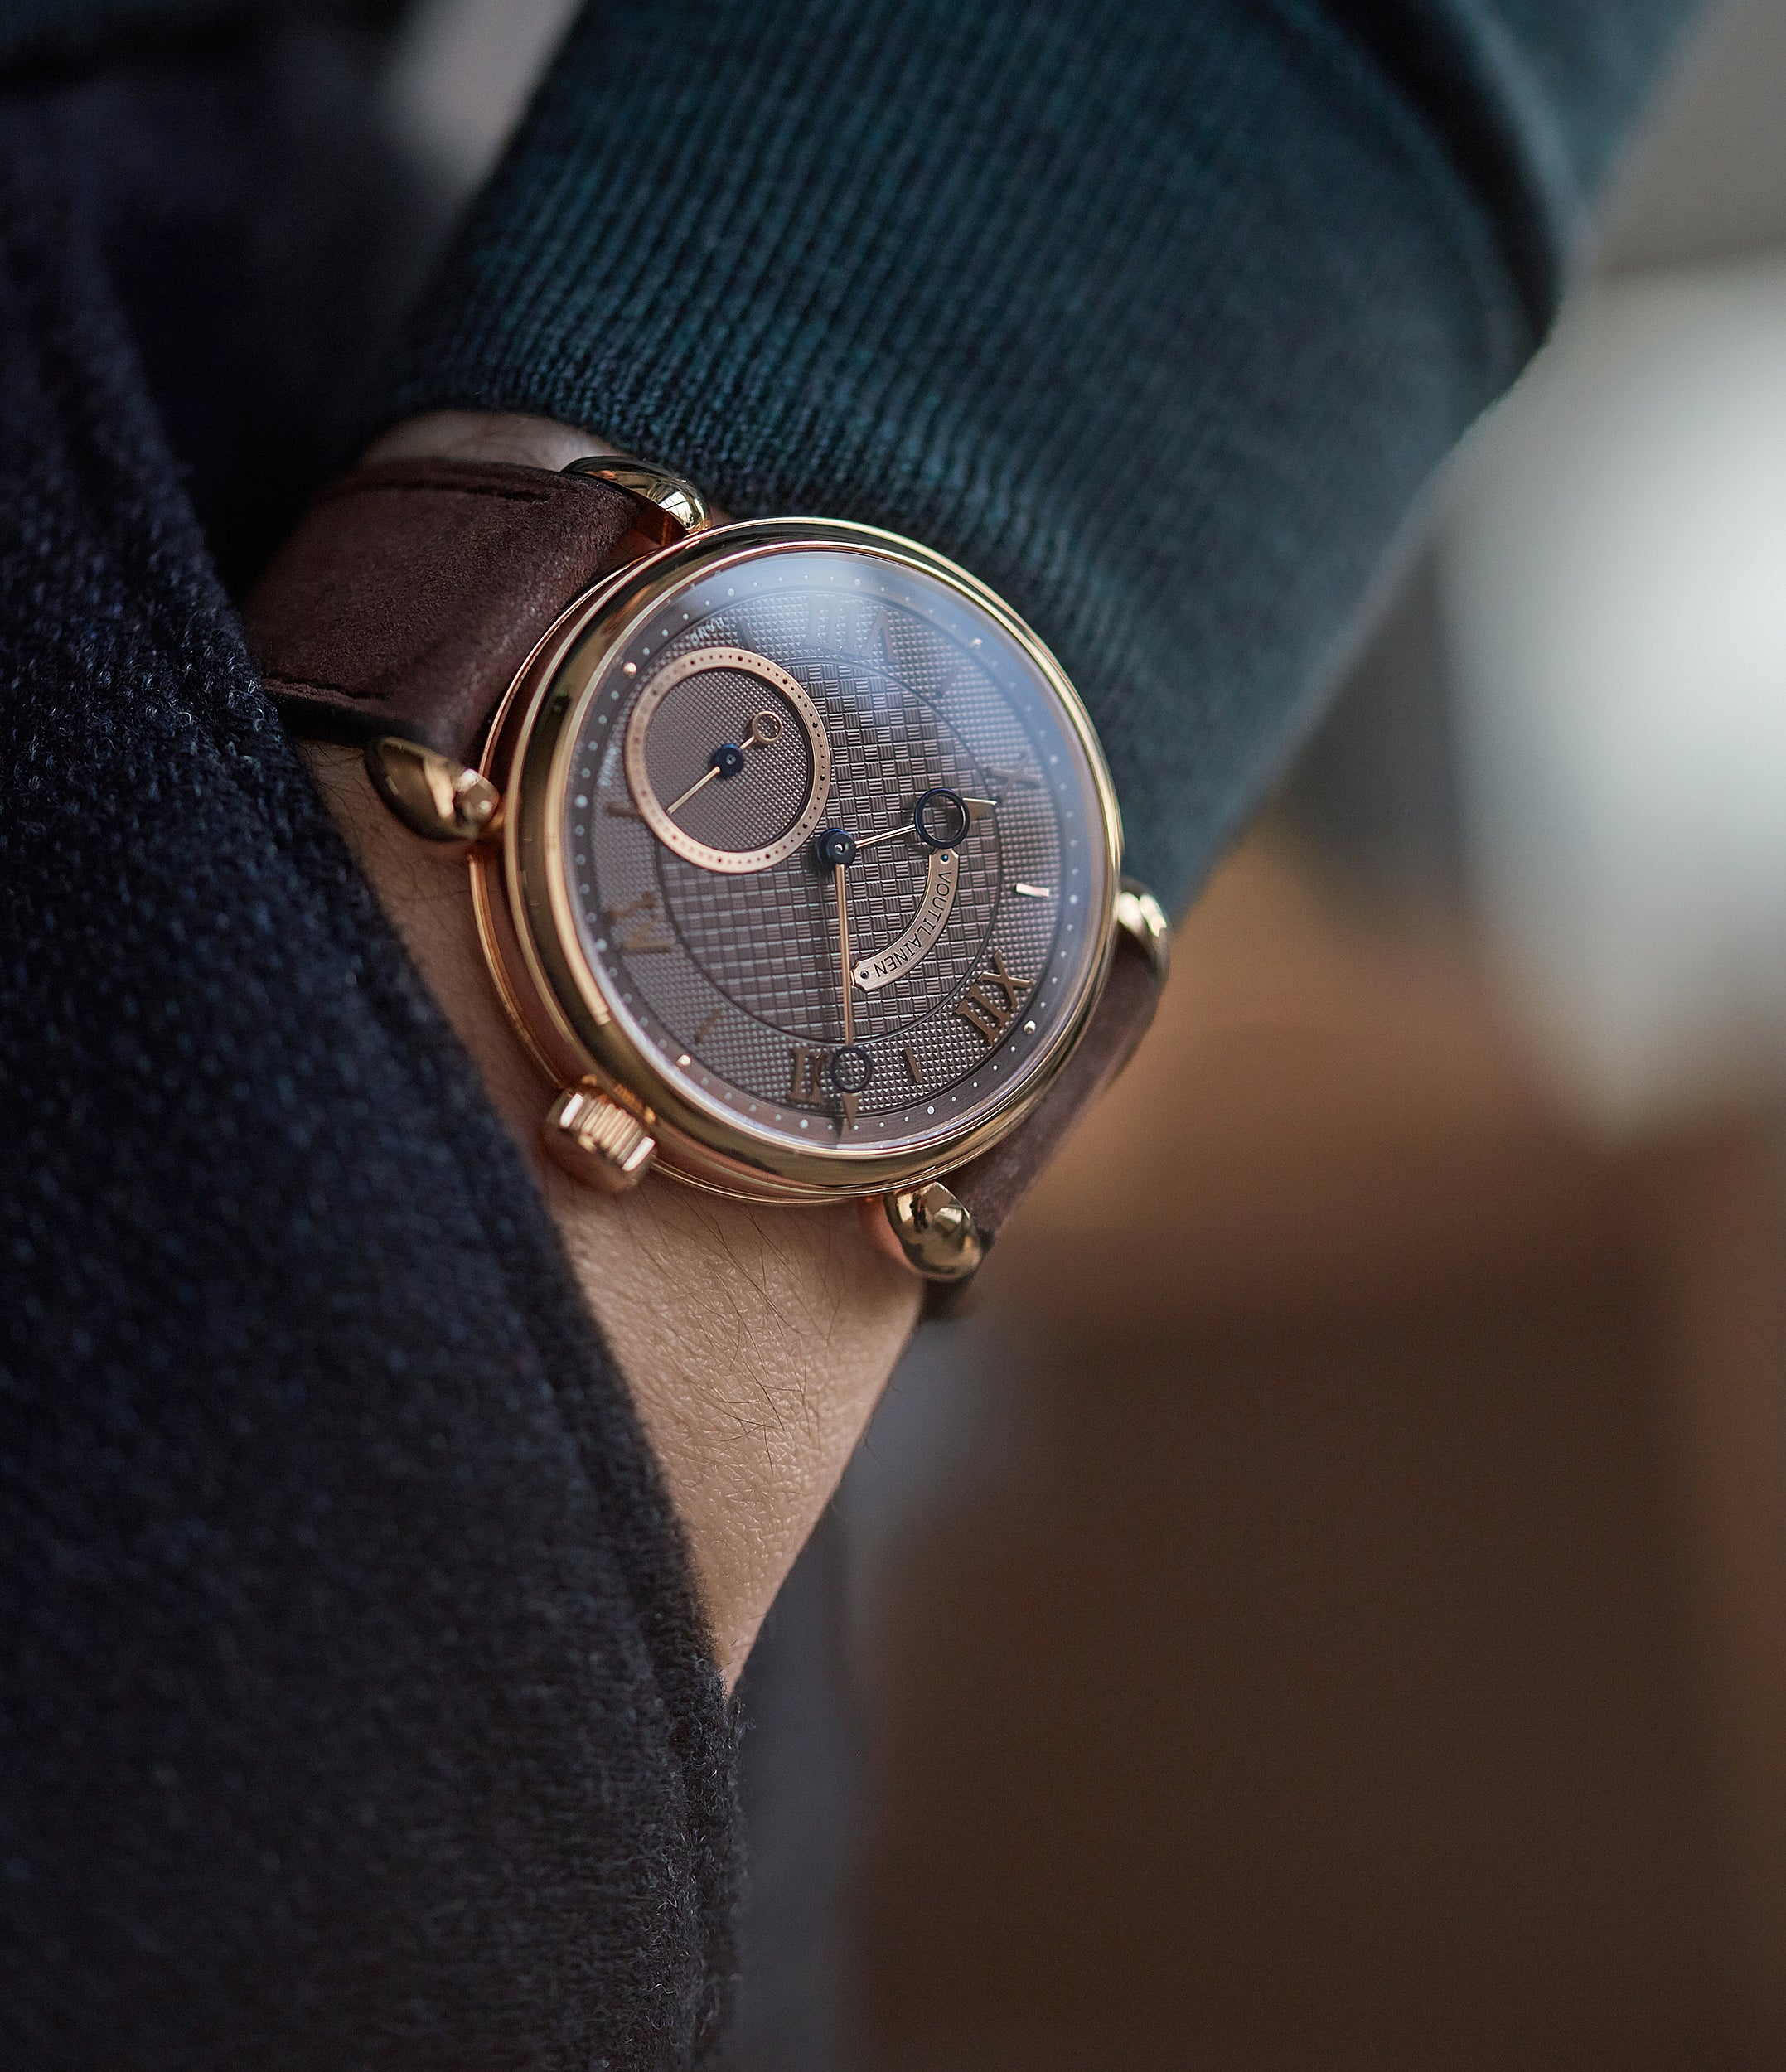 men's luxury wristwatch Voutilainen Vingt-8 Cal. 28 rose gold dress watch with brown guilloche dial for sale at A Collected Man London approved re-seller of preowned Voutilainen watches